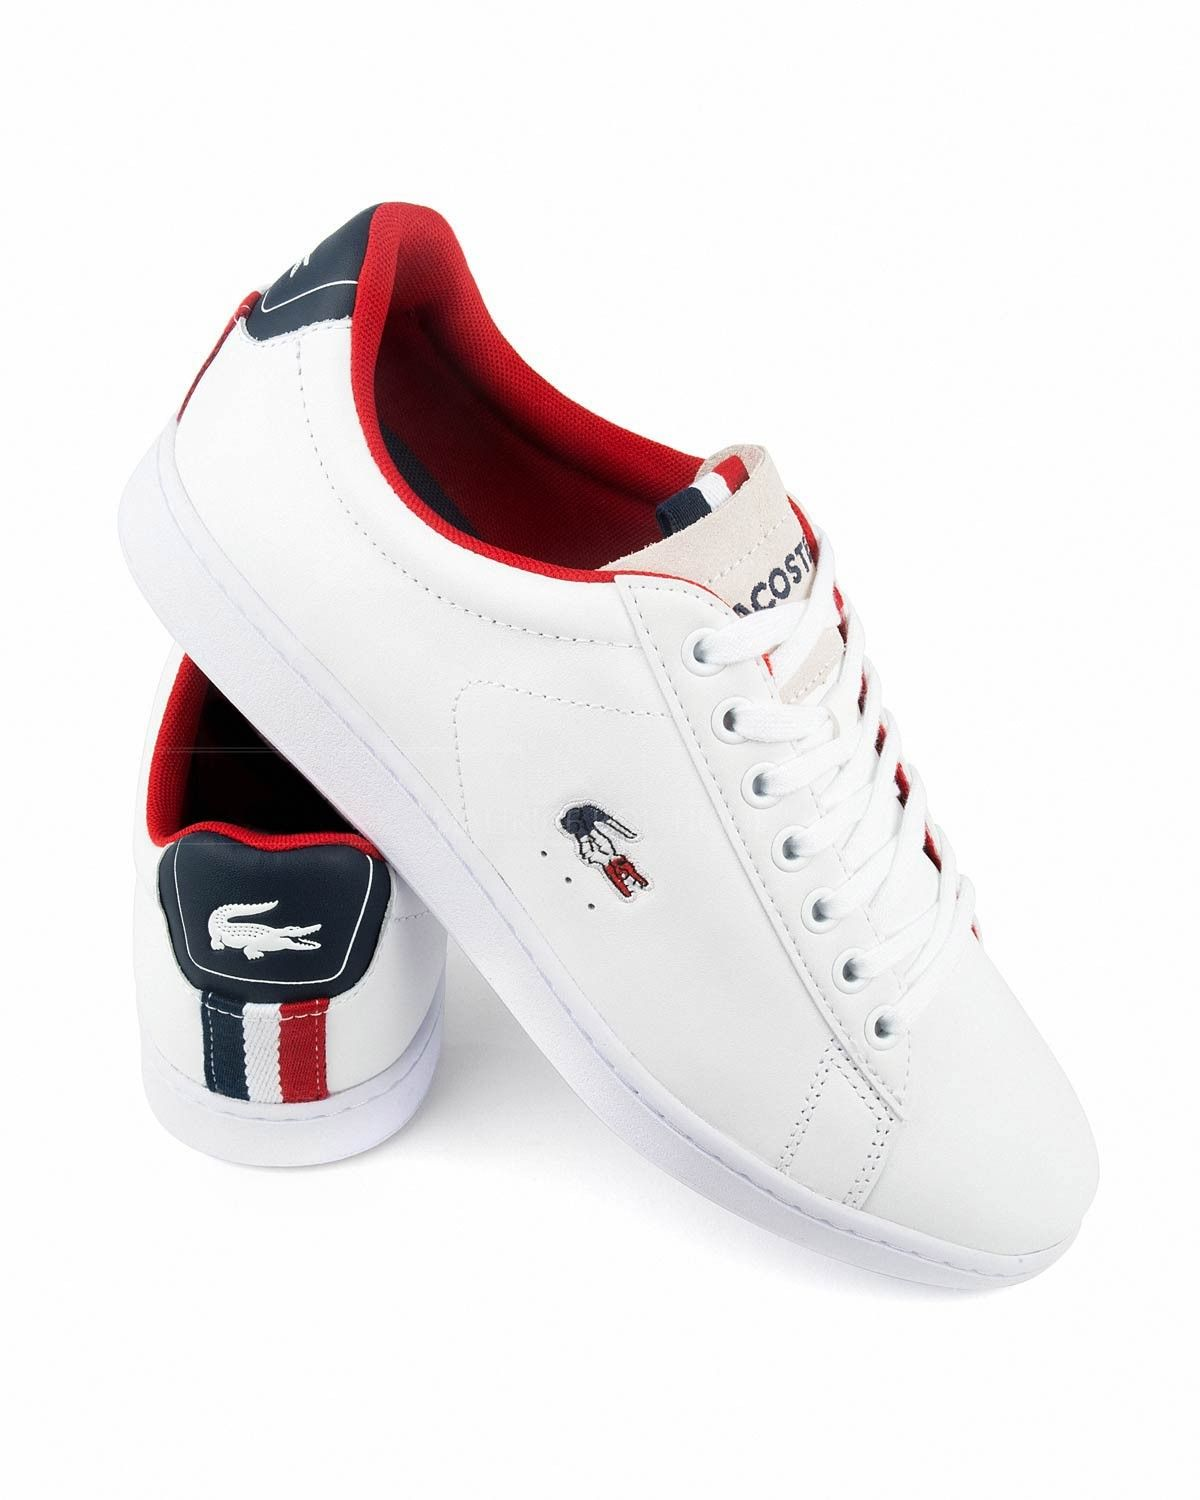 White Lacoste Shoes Carnaby Evo Lacoste Shoes Lacoste Sneakers Sneakers Fashion